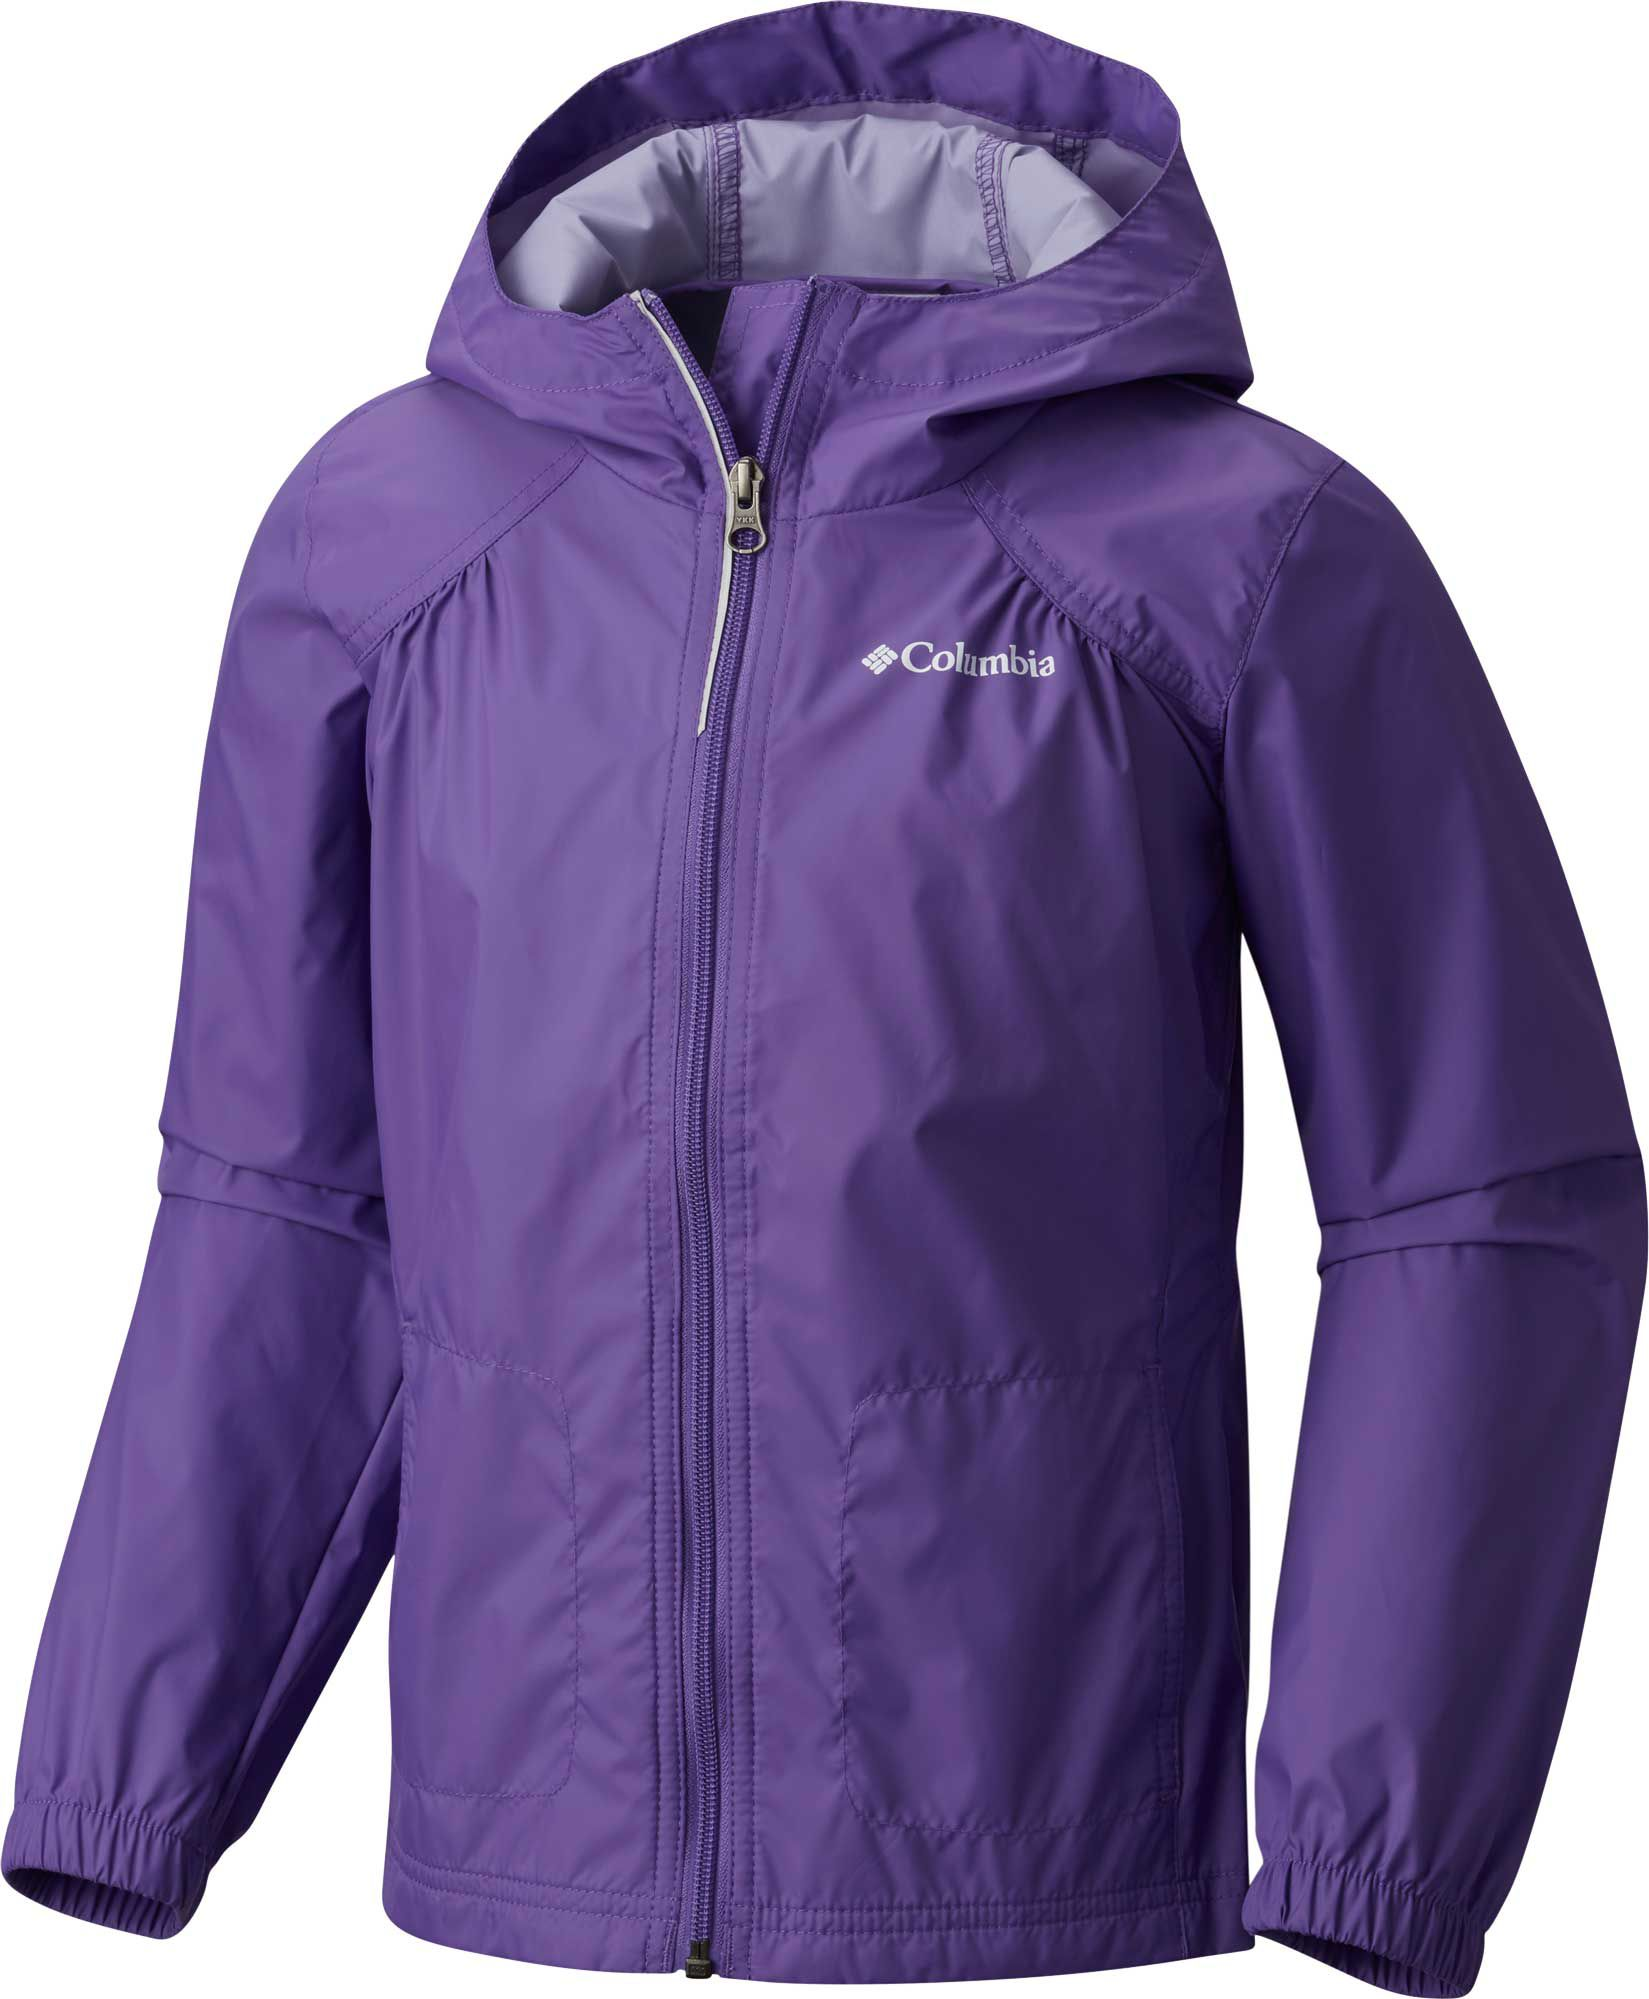 722546e56 Columbia Toddler Girls' Switchback Rain Jacket | DICK'S Sporting ...